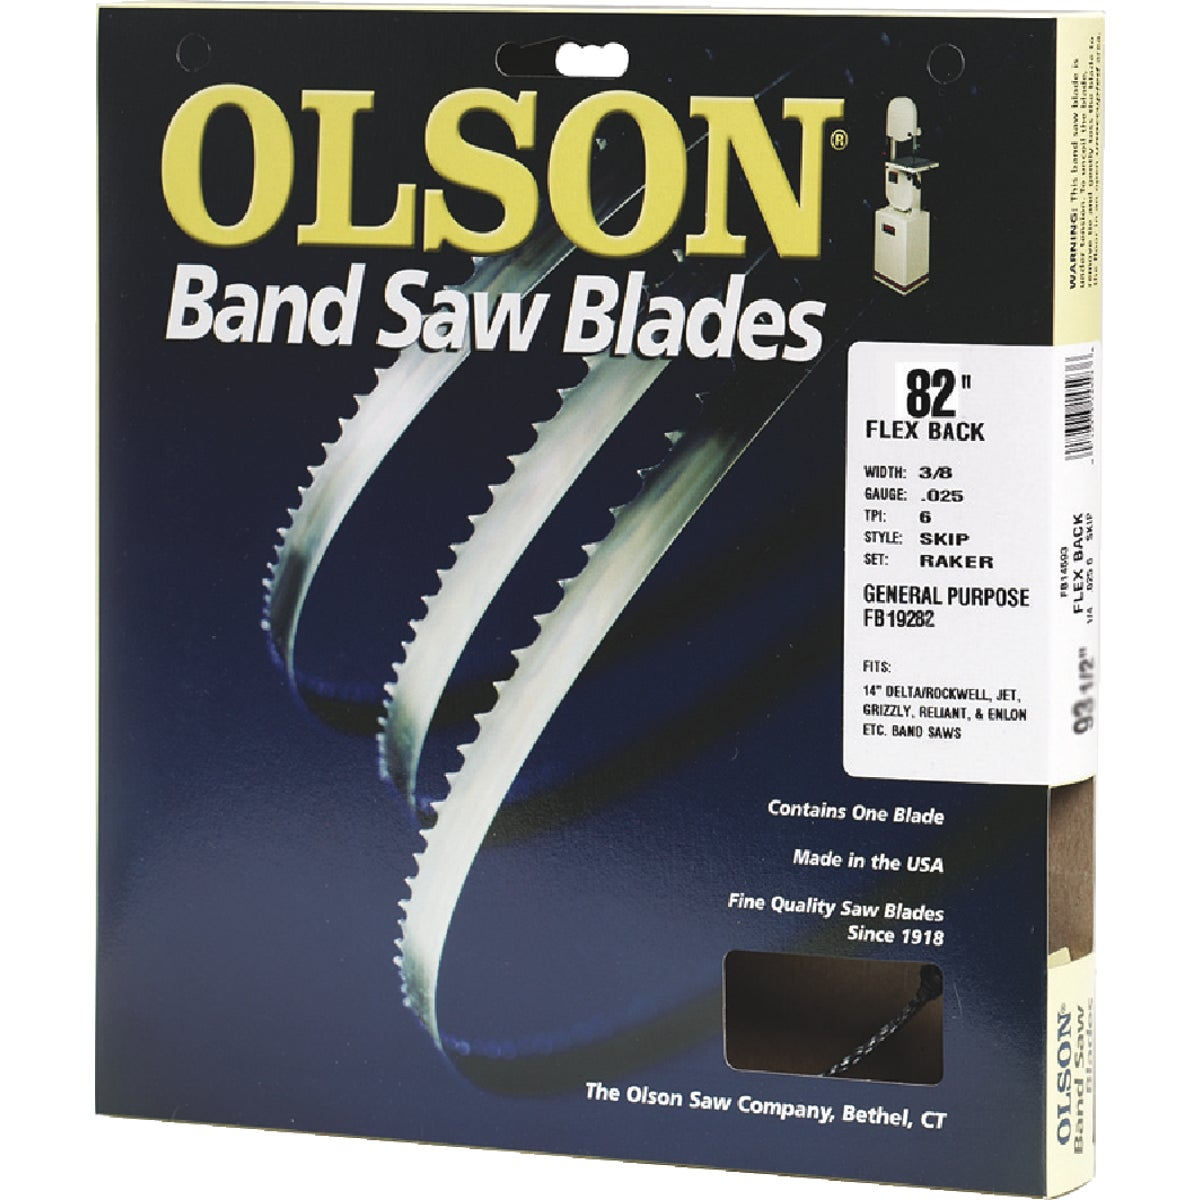 "82"" BANDSAW BLADE - 10082 by Olson Saw Co"